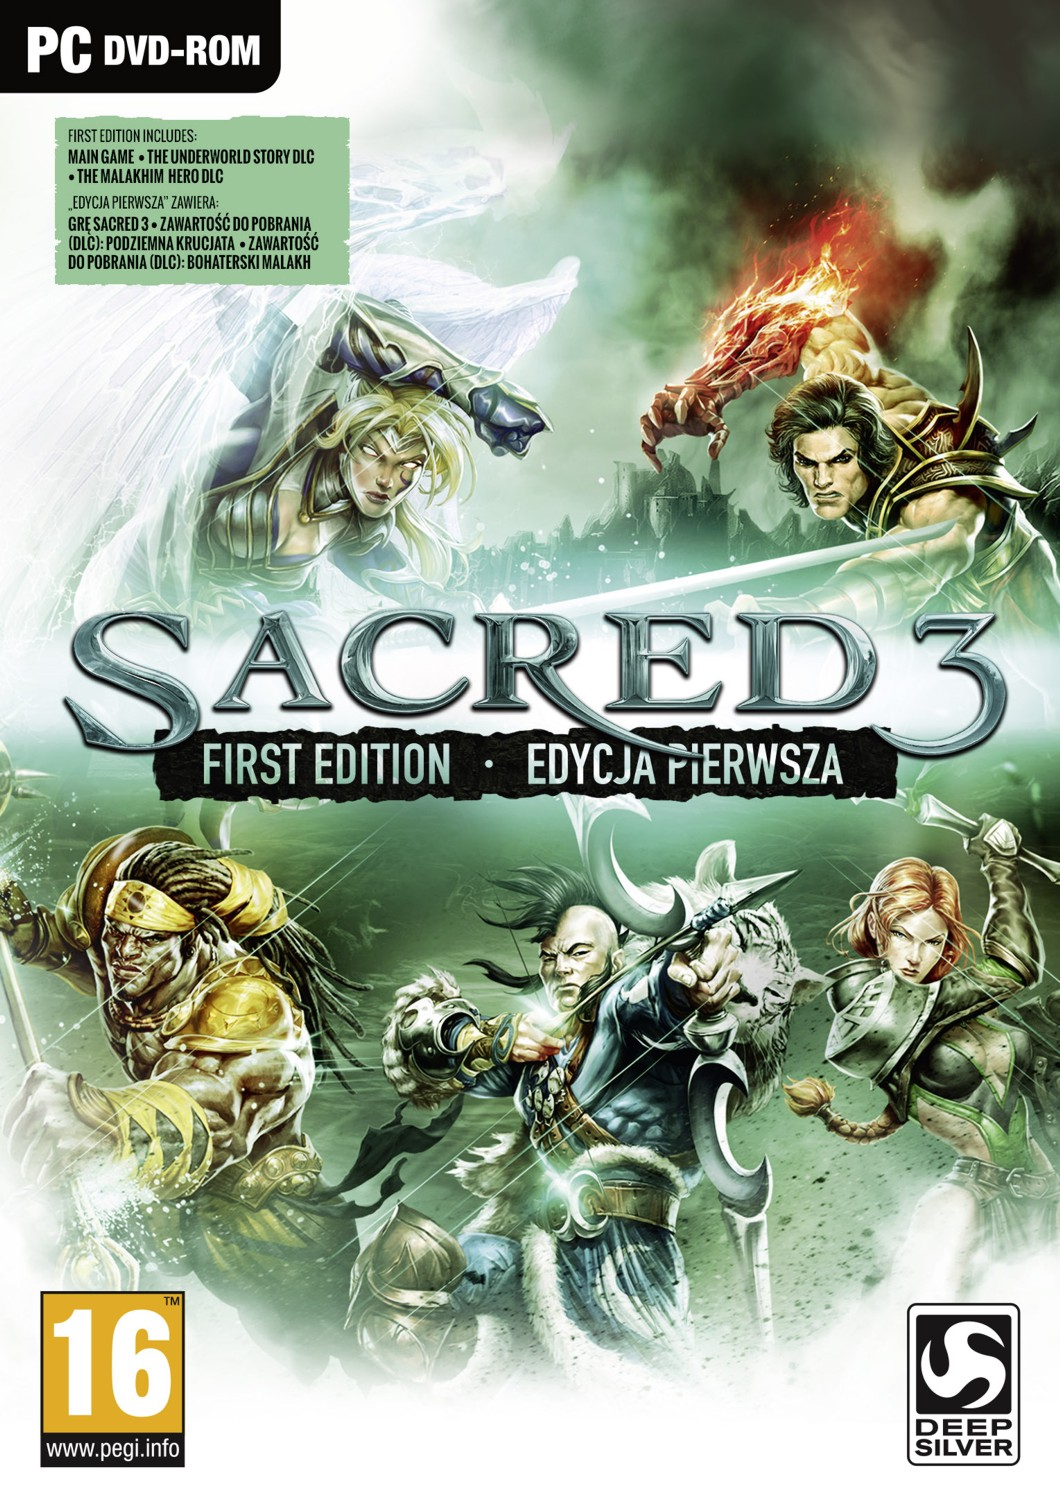 SACRED 3 FIRST EDITION - PC